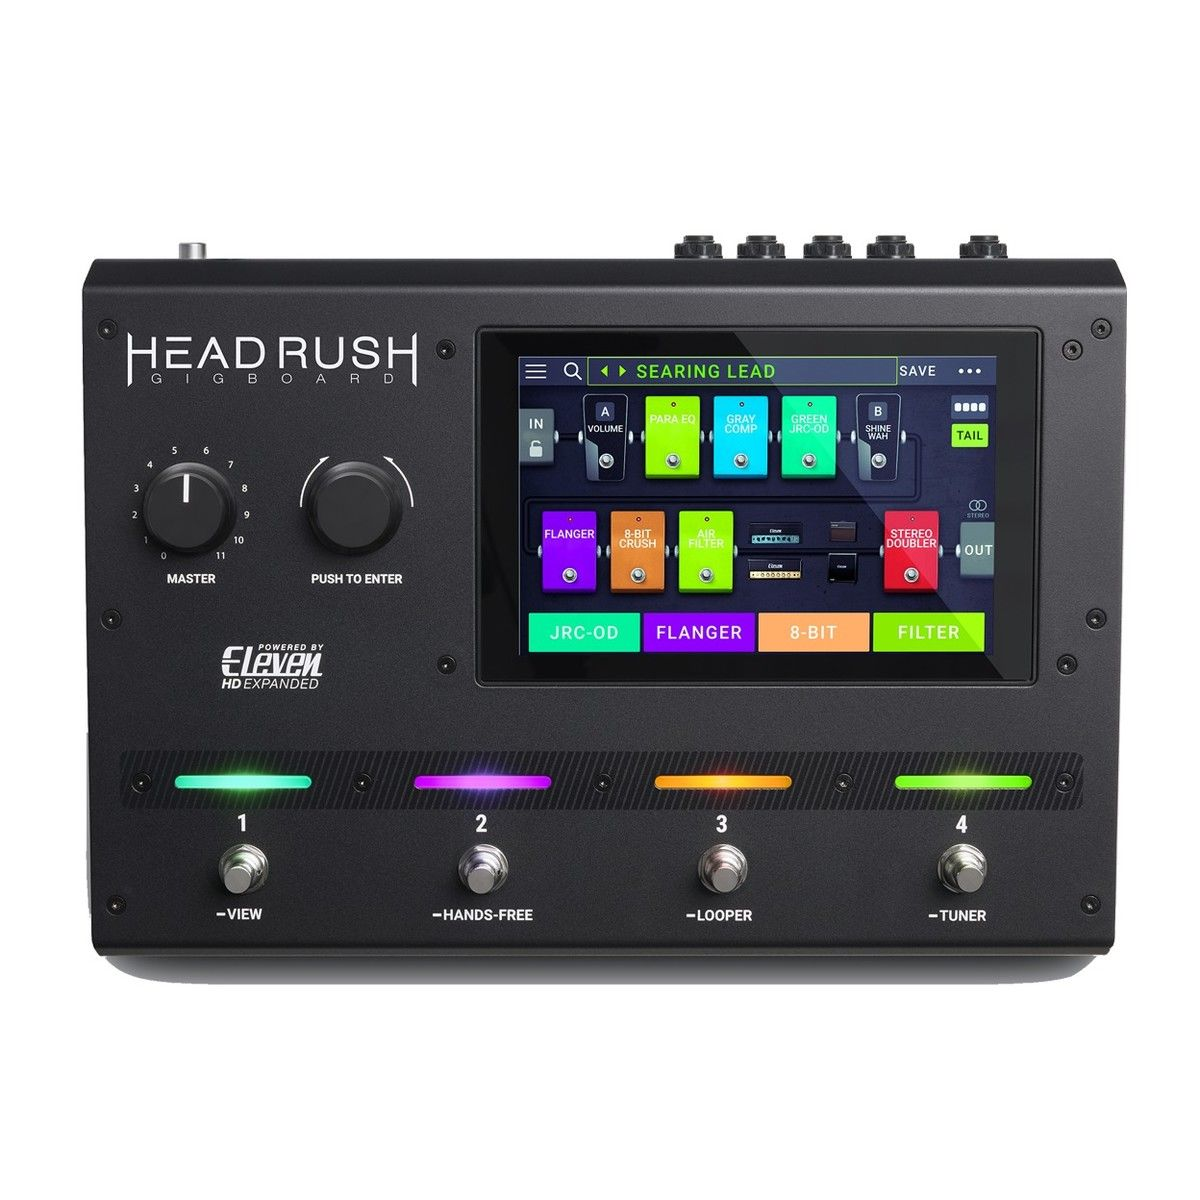 Процессор HeadRush Gigboard